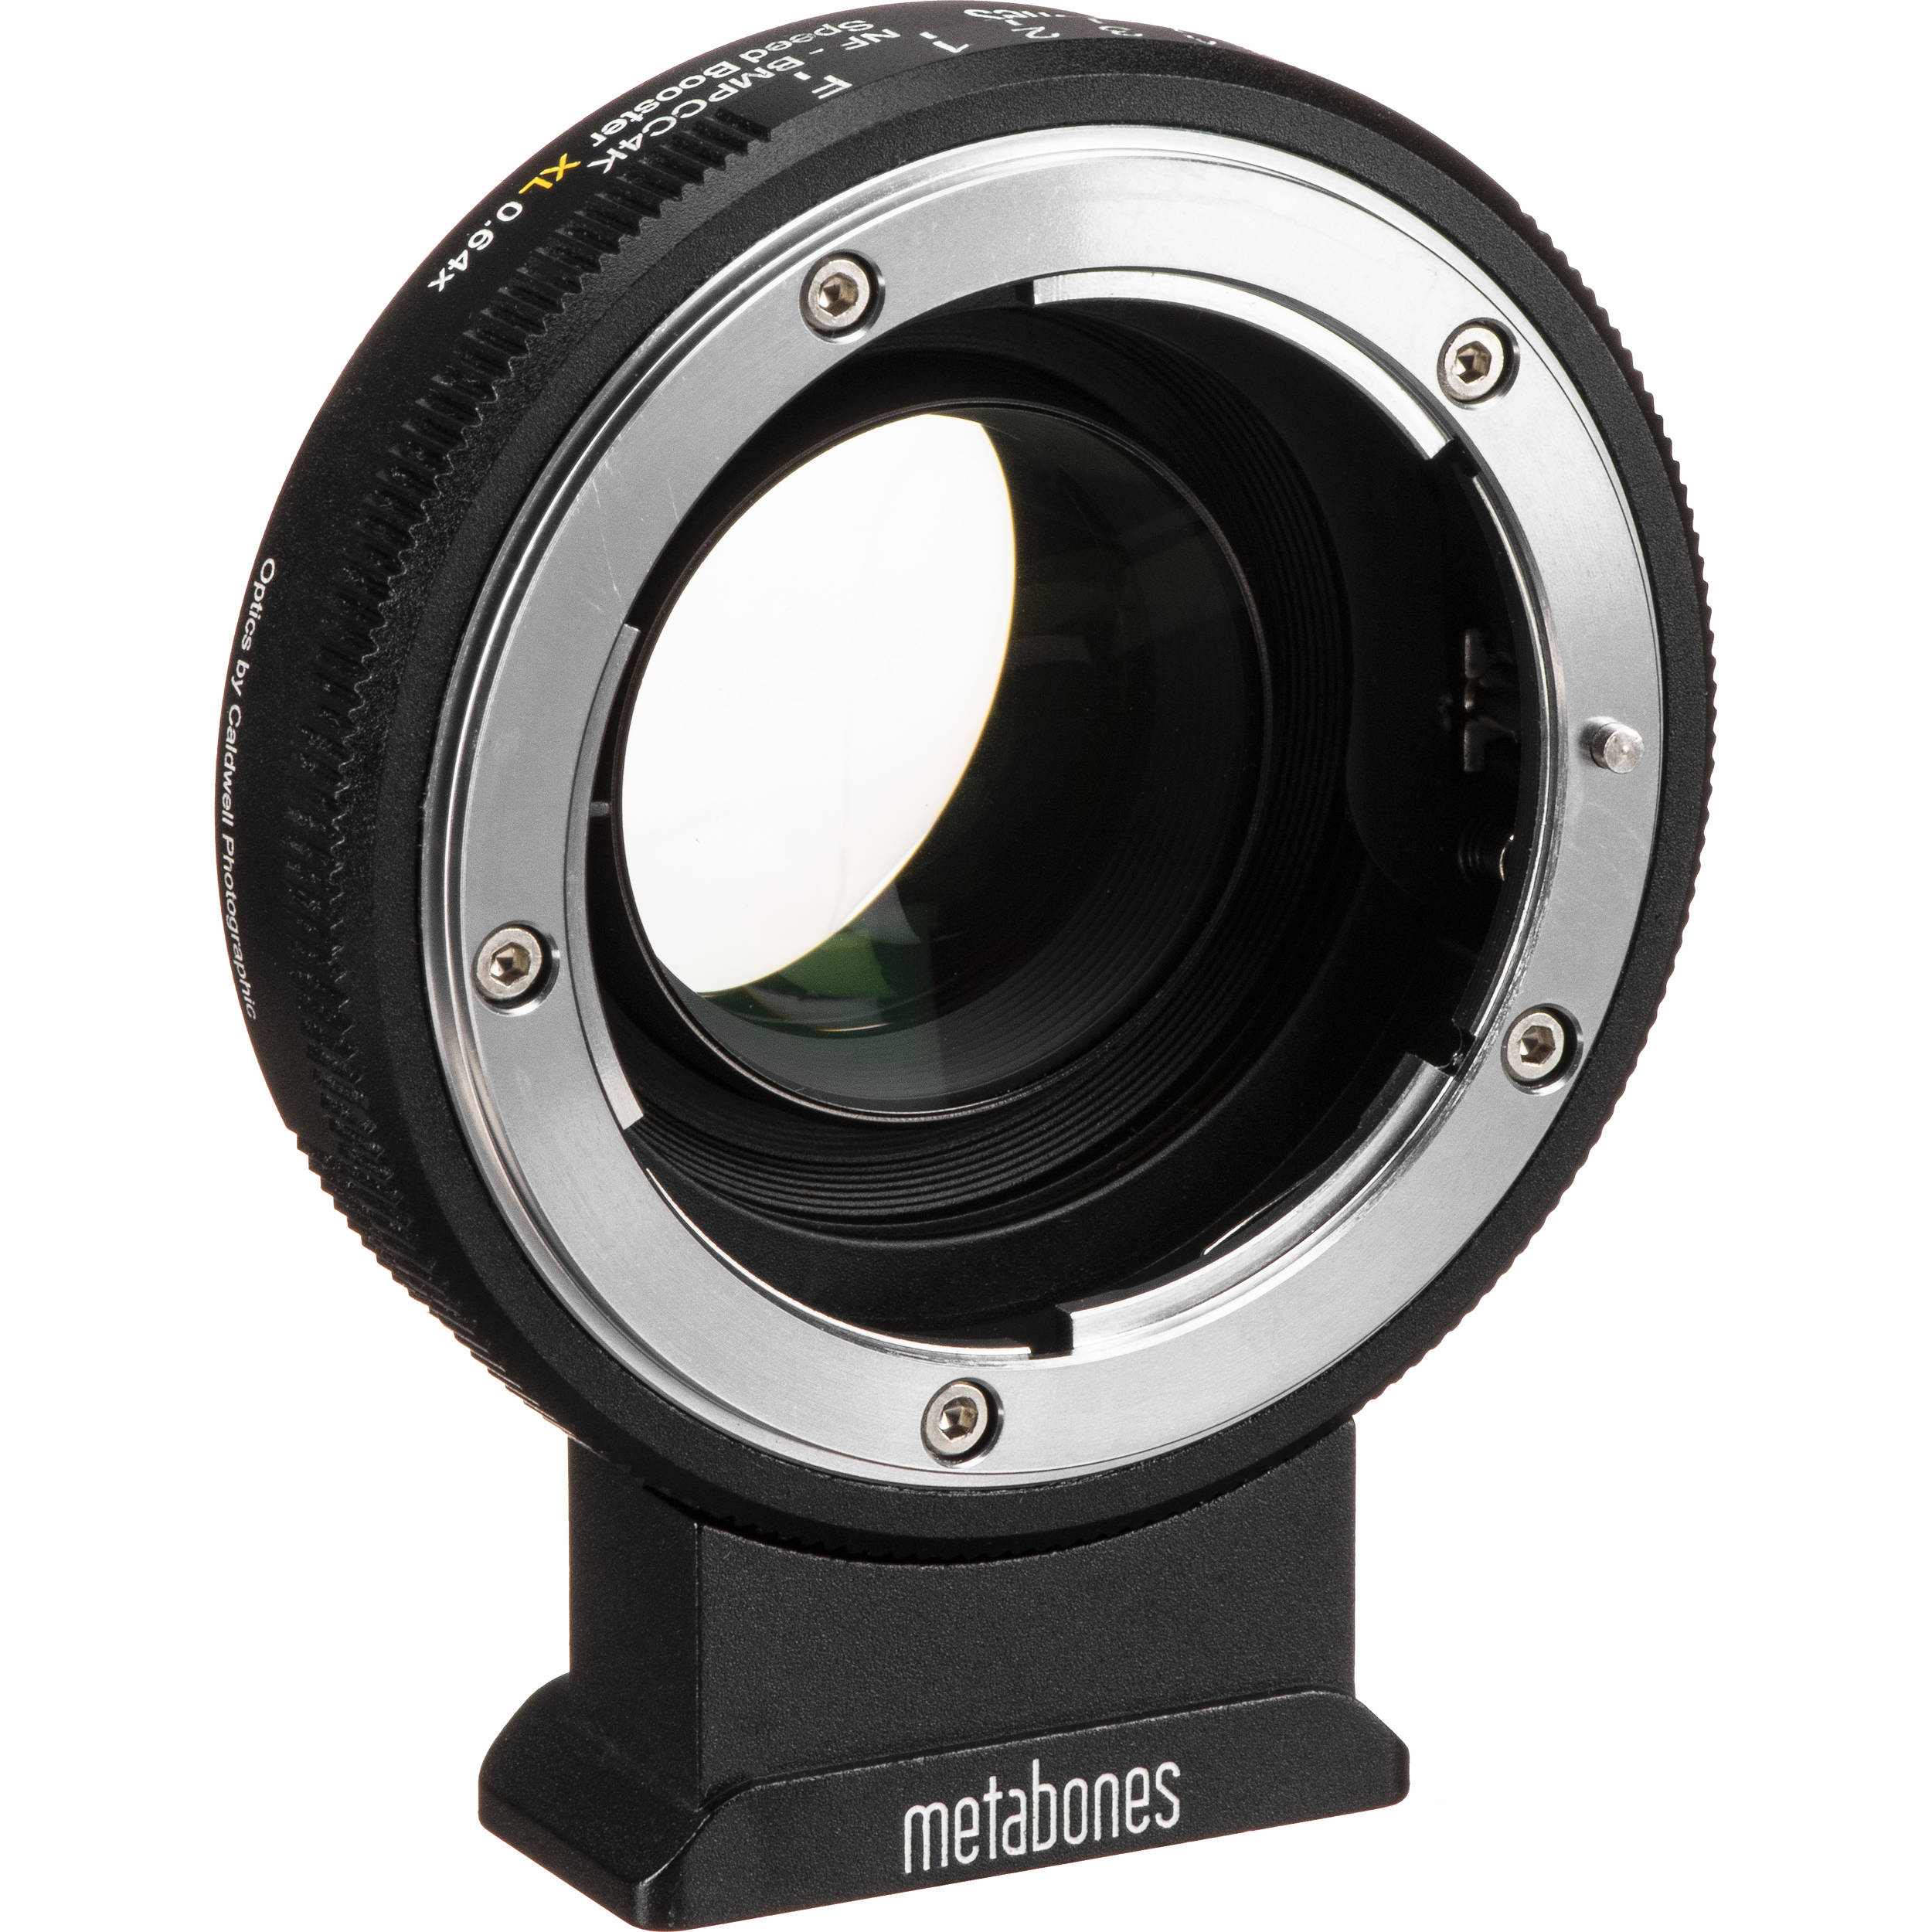 Metabones Speed Booster XL 0.64x Adapter for Nikon F Lens to BMPCC 4K Camera